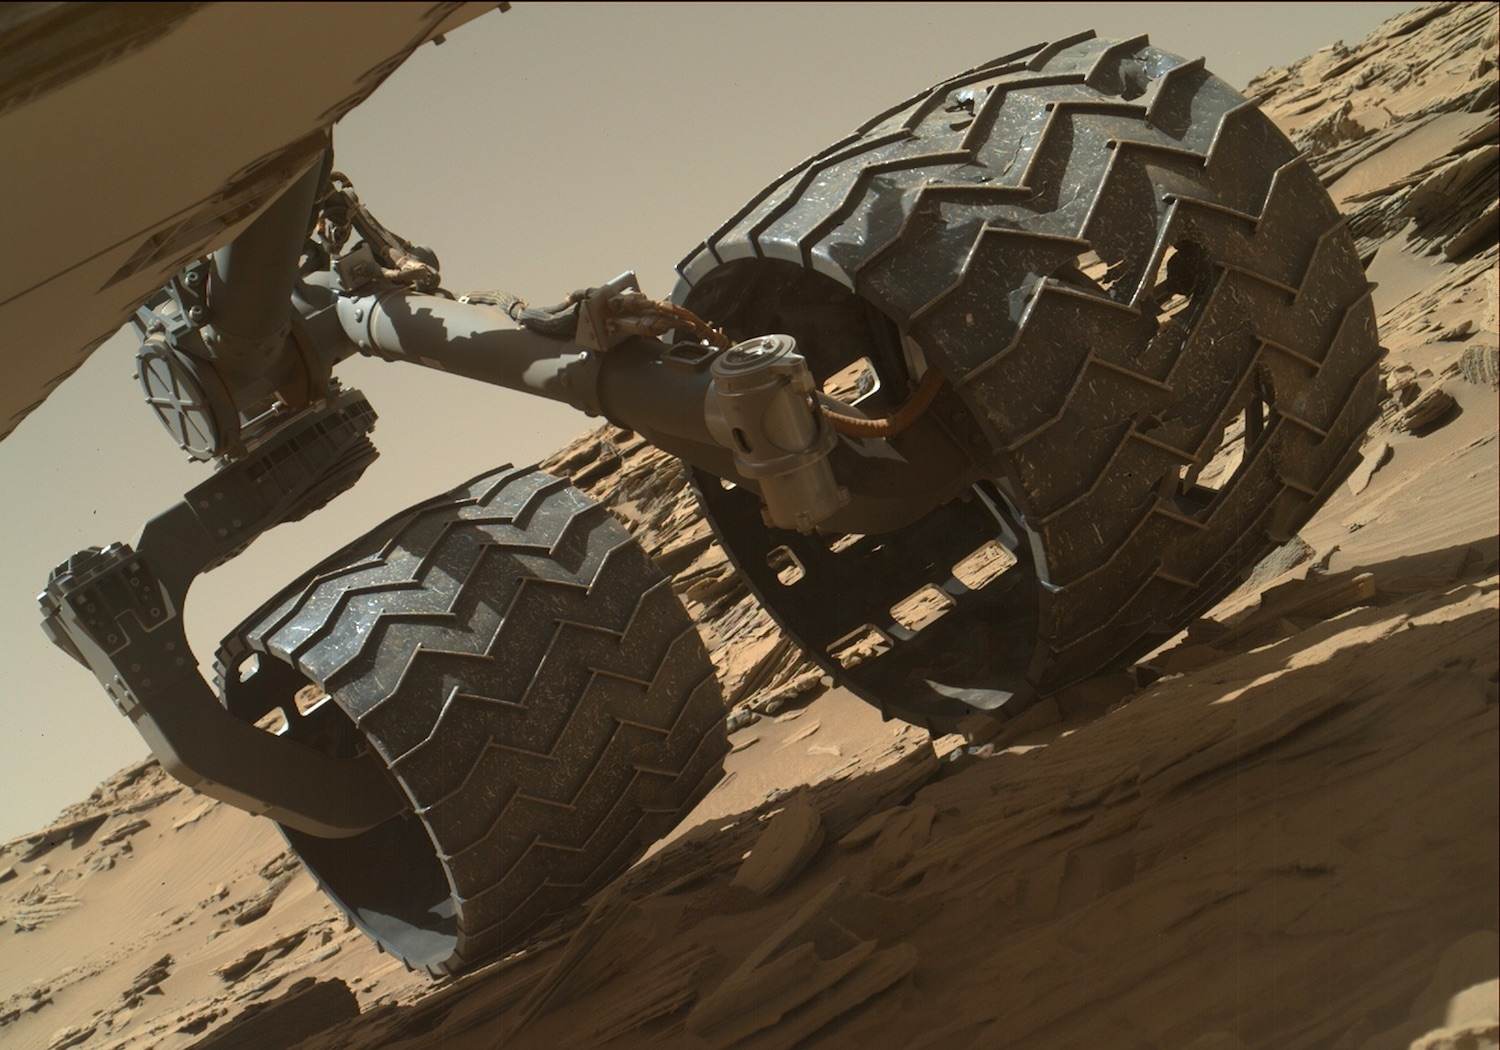 You can never find a garage when you need one. The Martian terrain continues to damage wheels on the Mars Science Laboratory  Curiosity . Fortunately the wheels should last long enough for the rover's ascent of Aeolis Mons. Credit:  Nasa-JPL/Caltech